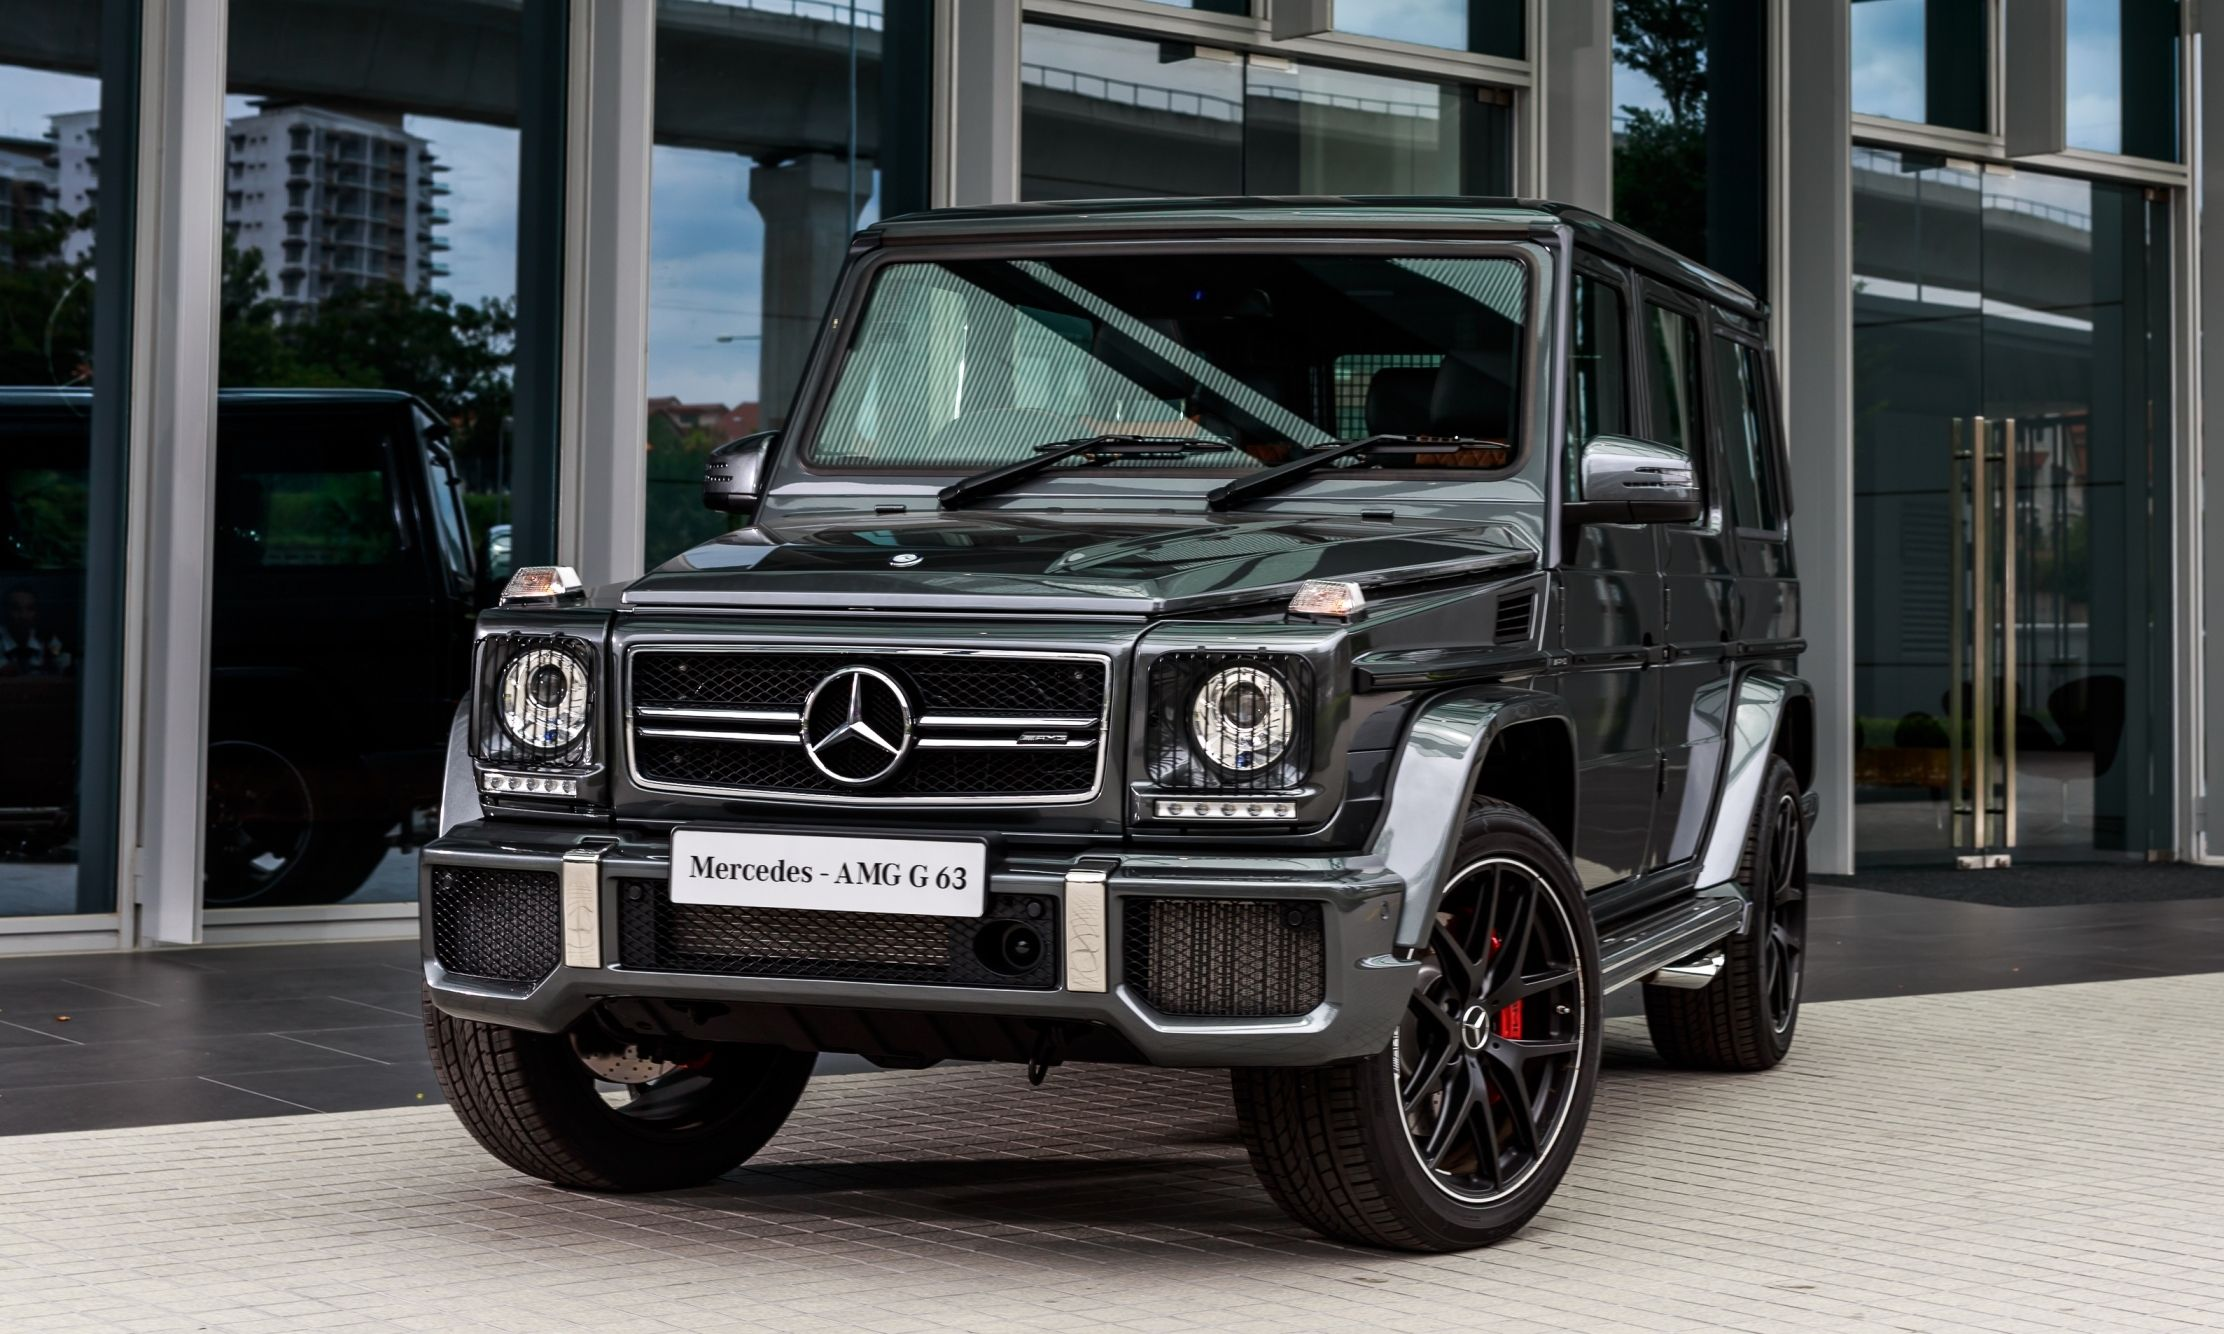 Other cars mercedes benz g 280 edition mercedes benz g - Mercedes Benz Malaysia Has Officially Launched The G Class Facelift In The Country